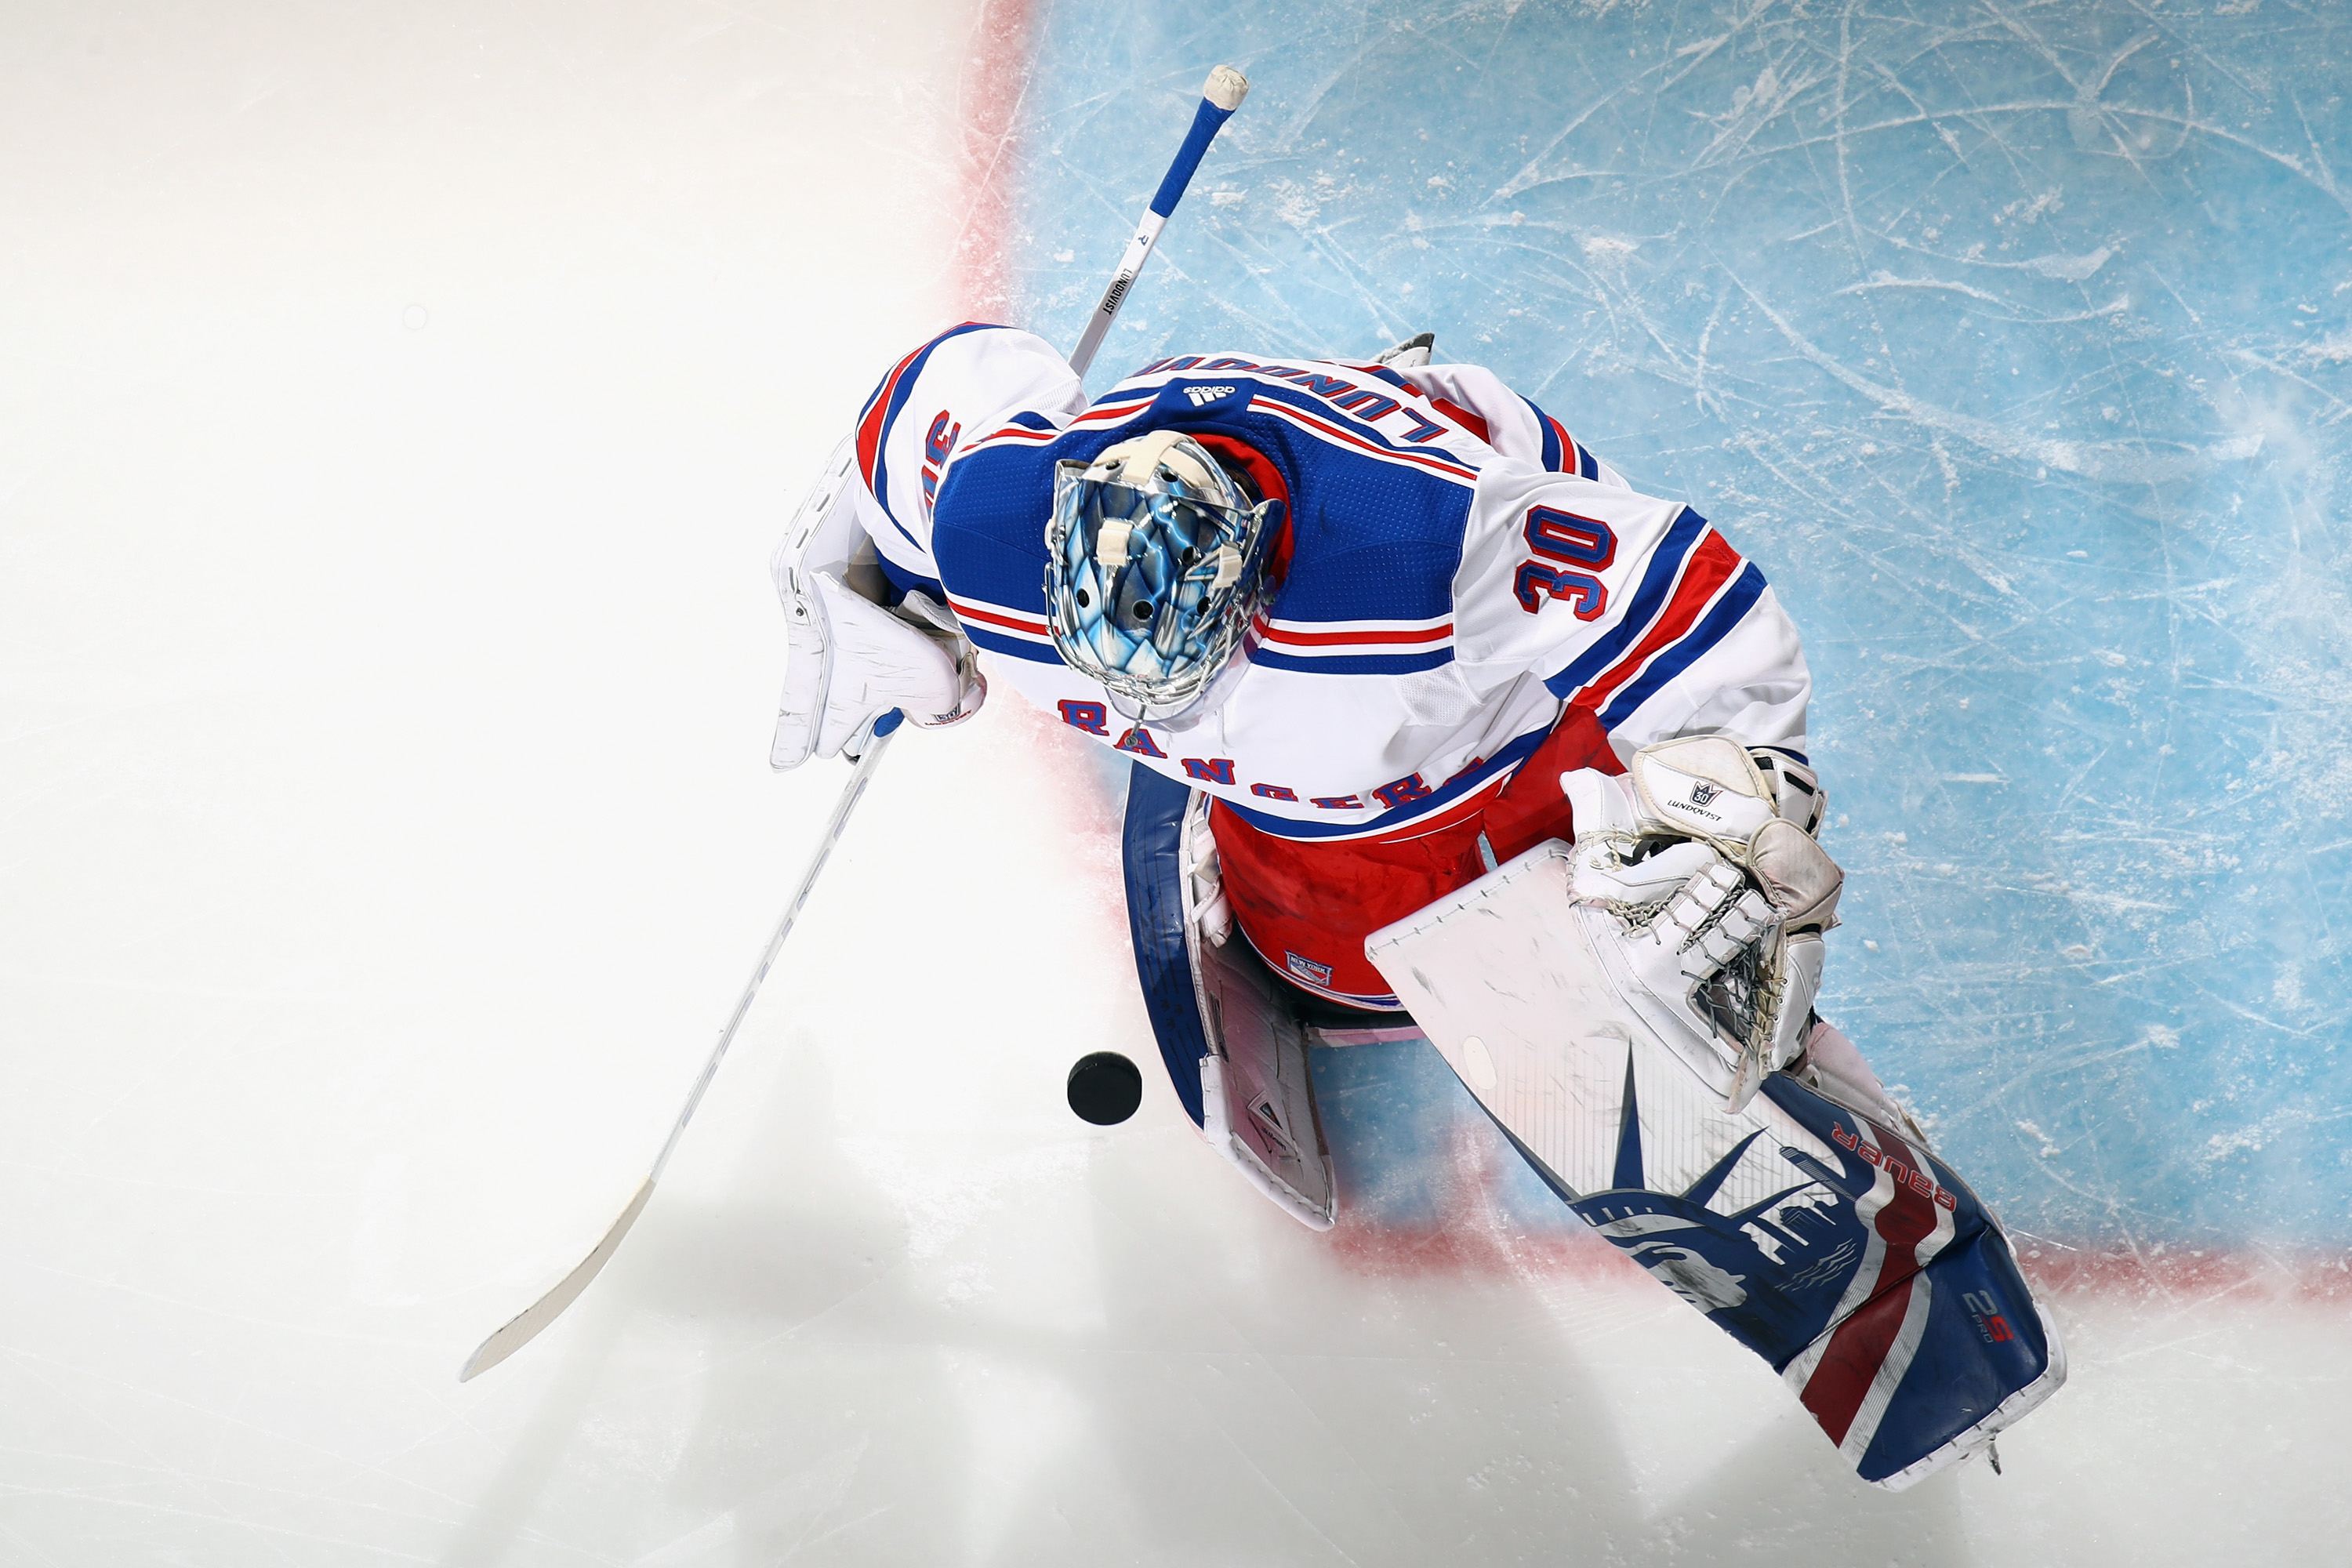 Rangers vs. Devils: Restoring the importance of this once-great National Hockey League rivalry